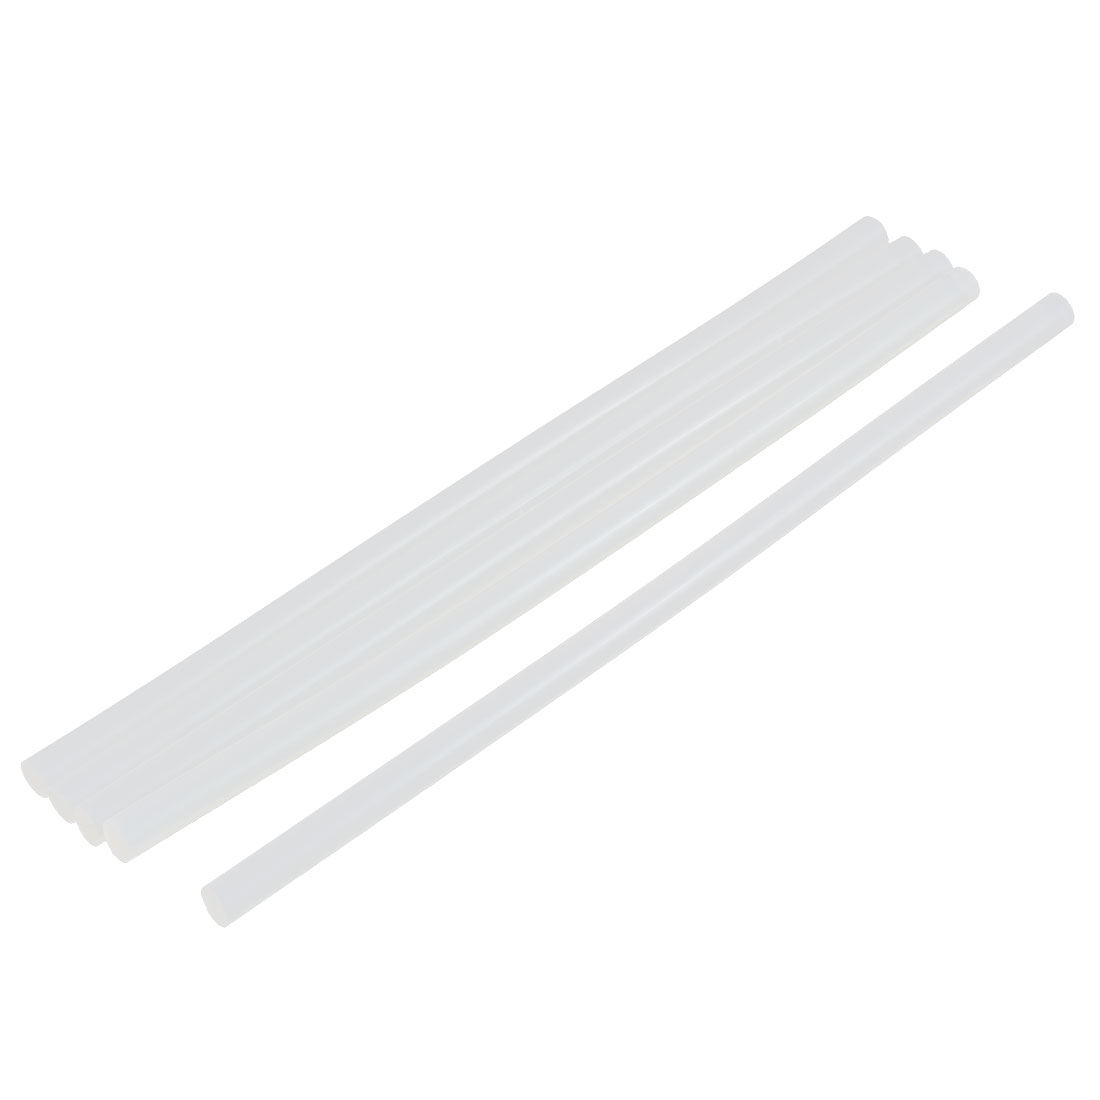 5 Pcs Hot Melt Glue Adhesive Sticks 200mm x 7mm for Electric Heating Gun